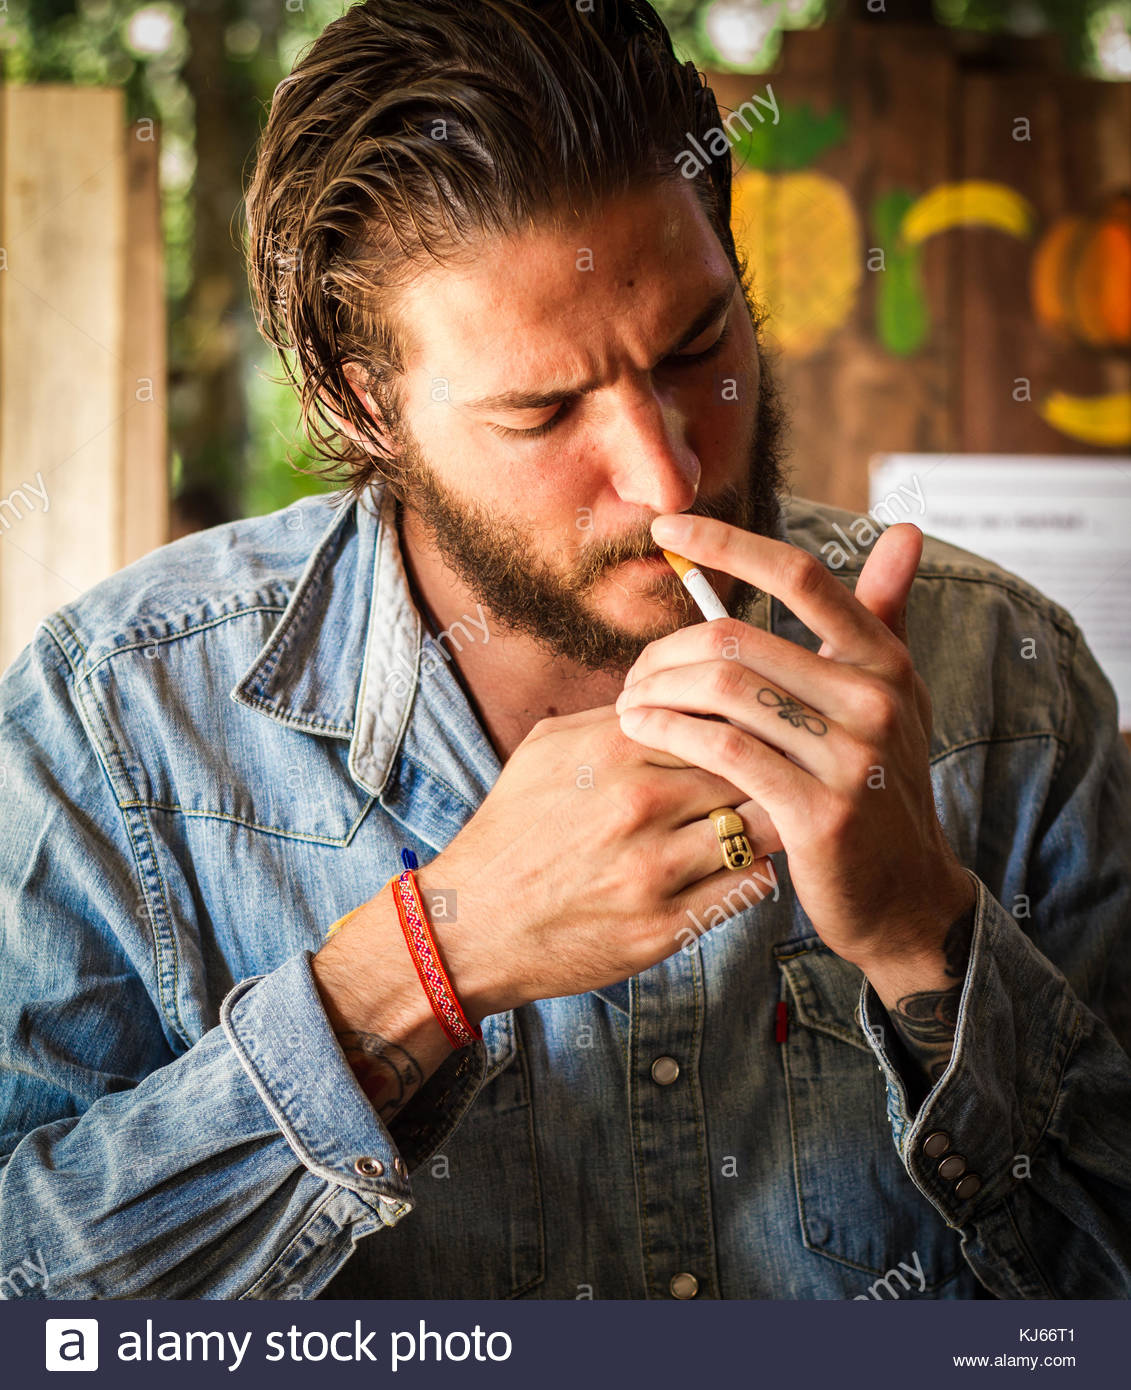 young man with beard smoking in sun - Stock Image